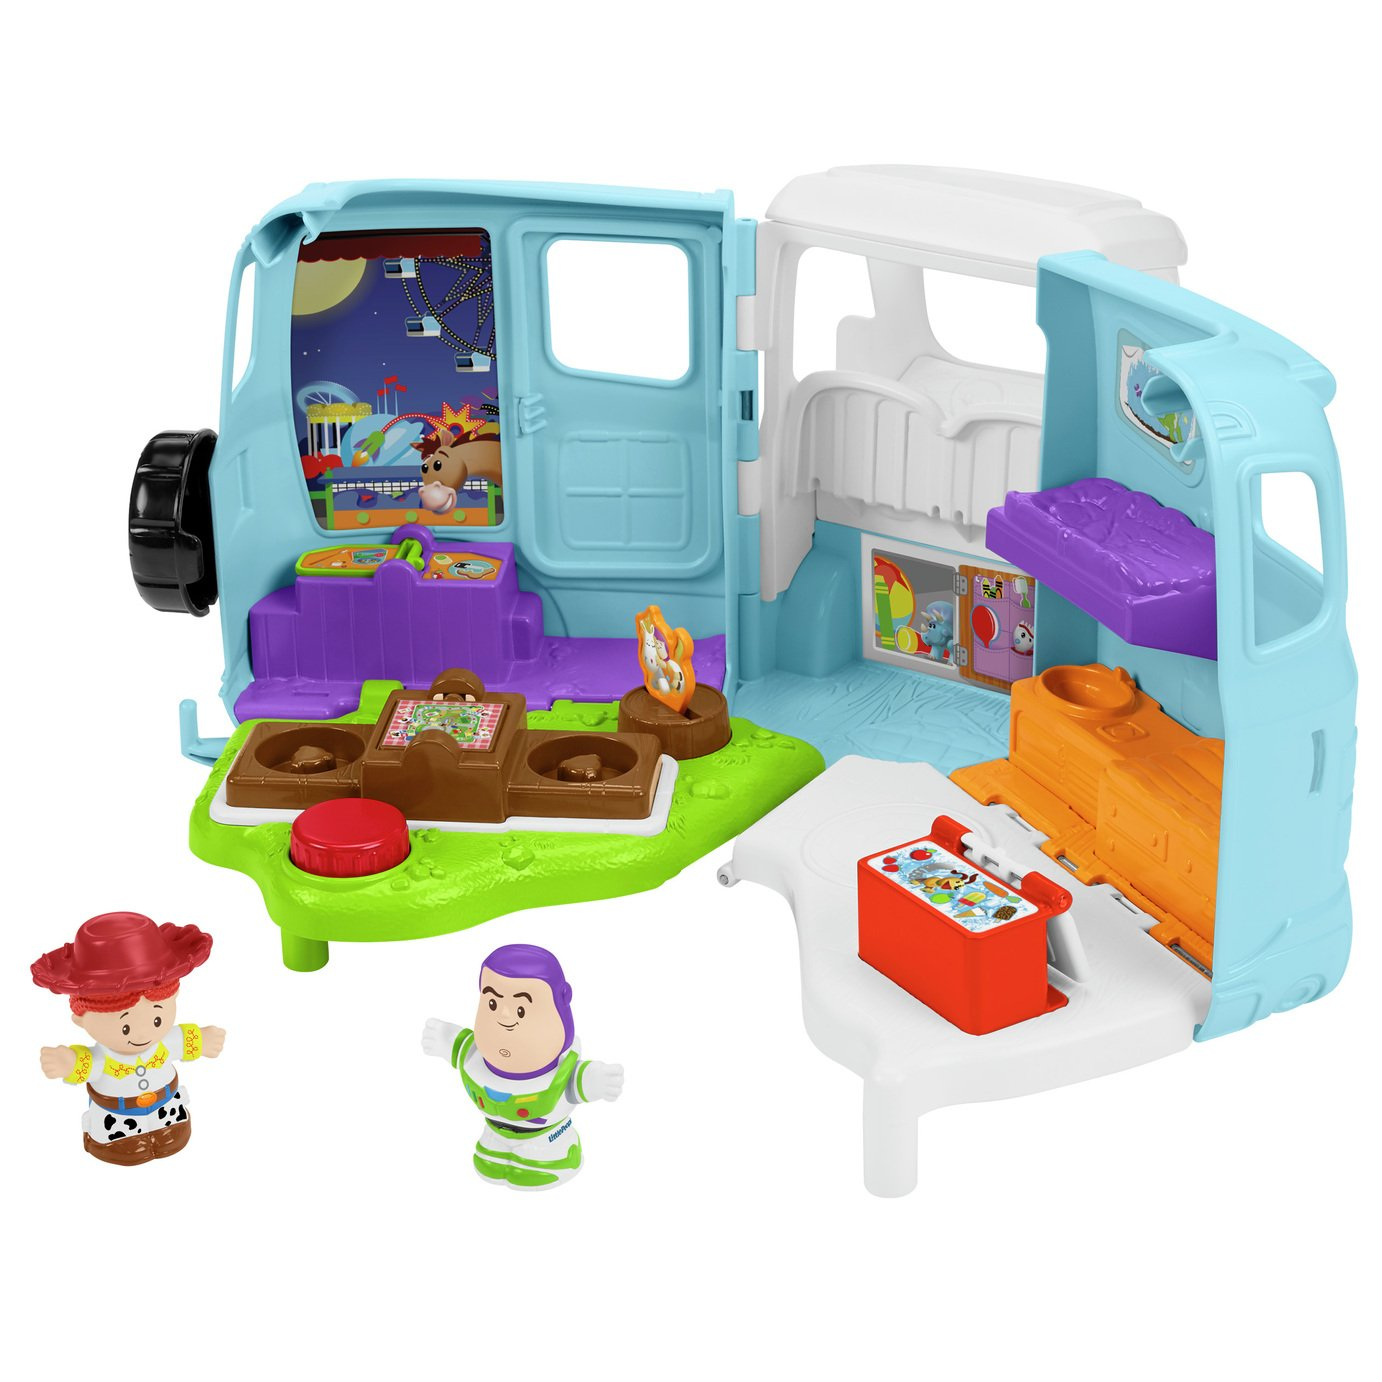 Disney Pixar Toy Story 4 Jessie's Campground RV Playset